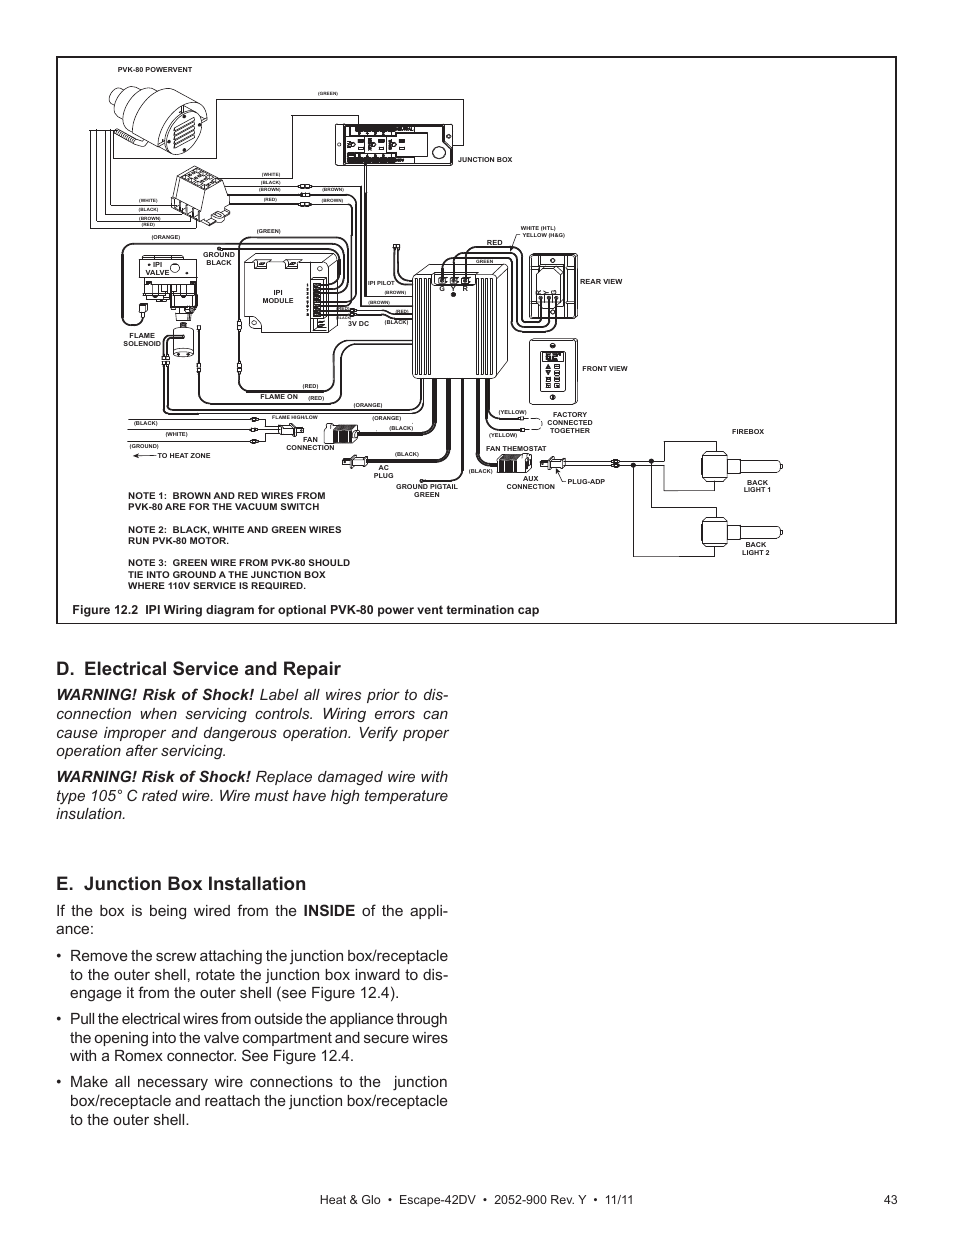 Glo Underfloor Heating Wiring Diagram : Heatilator fireplace wiring diagram gas